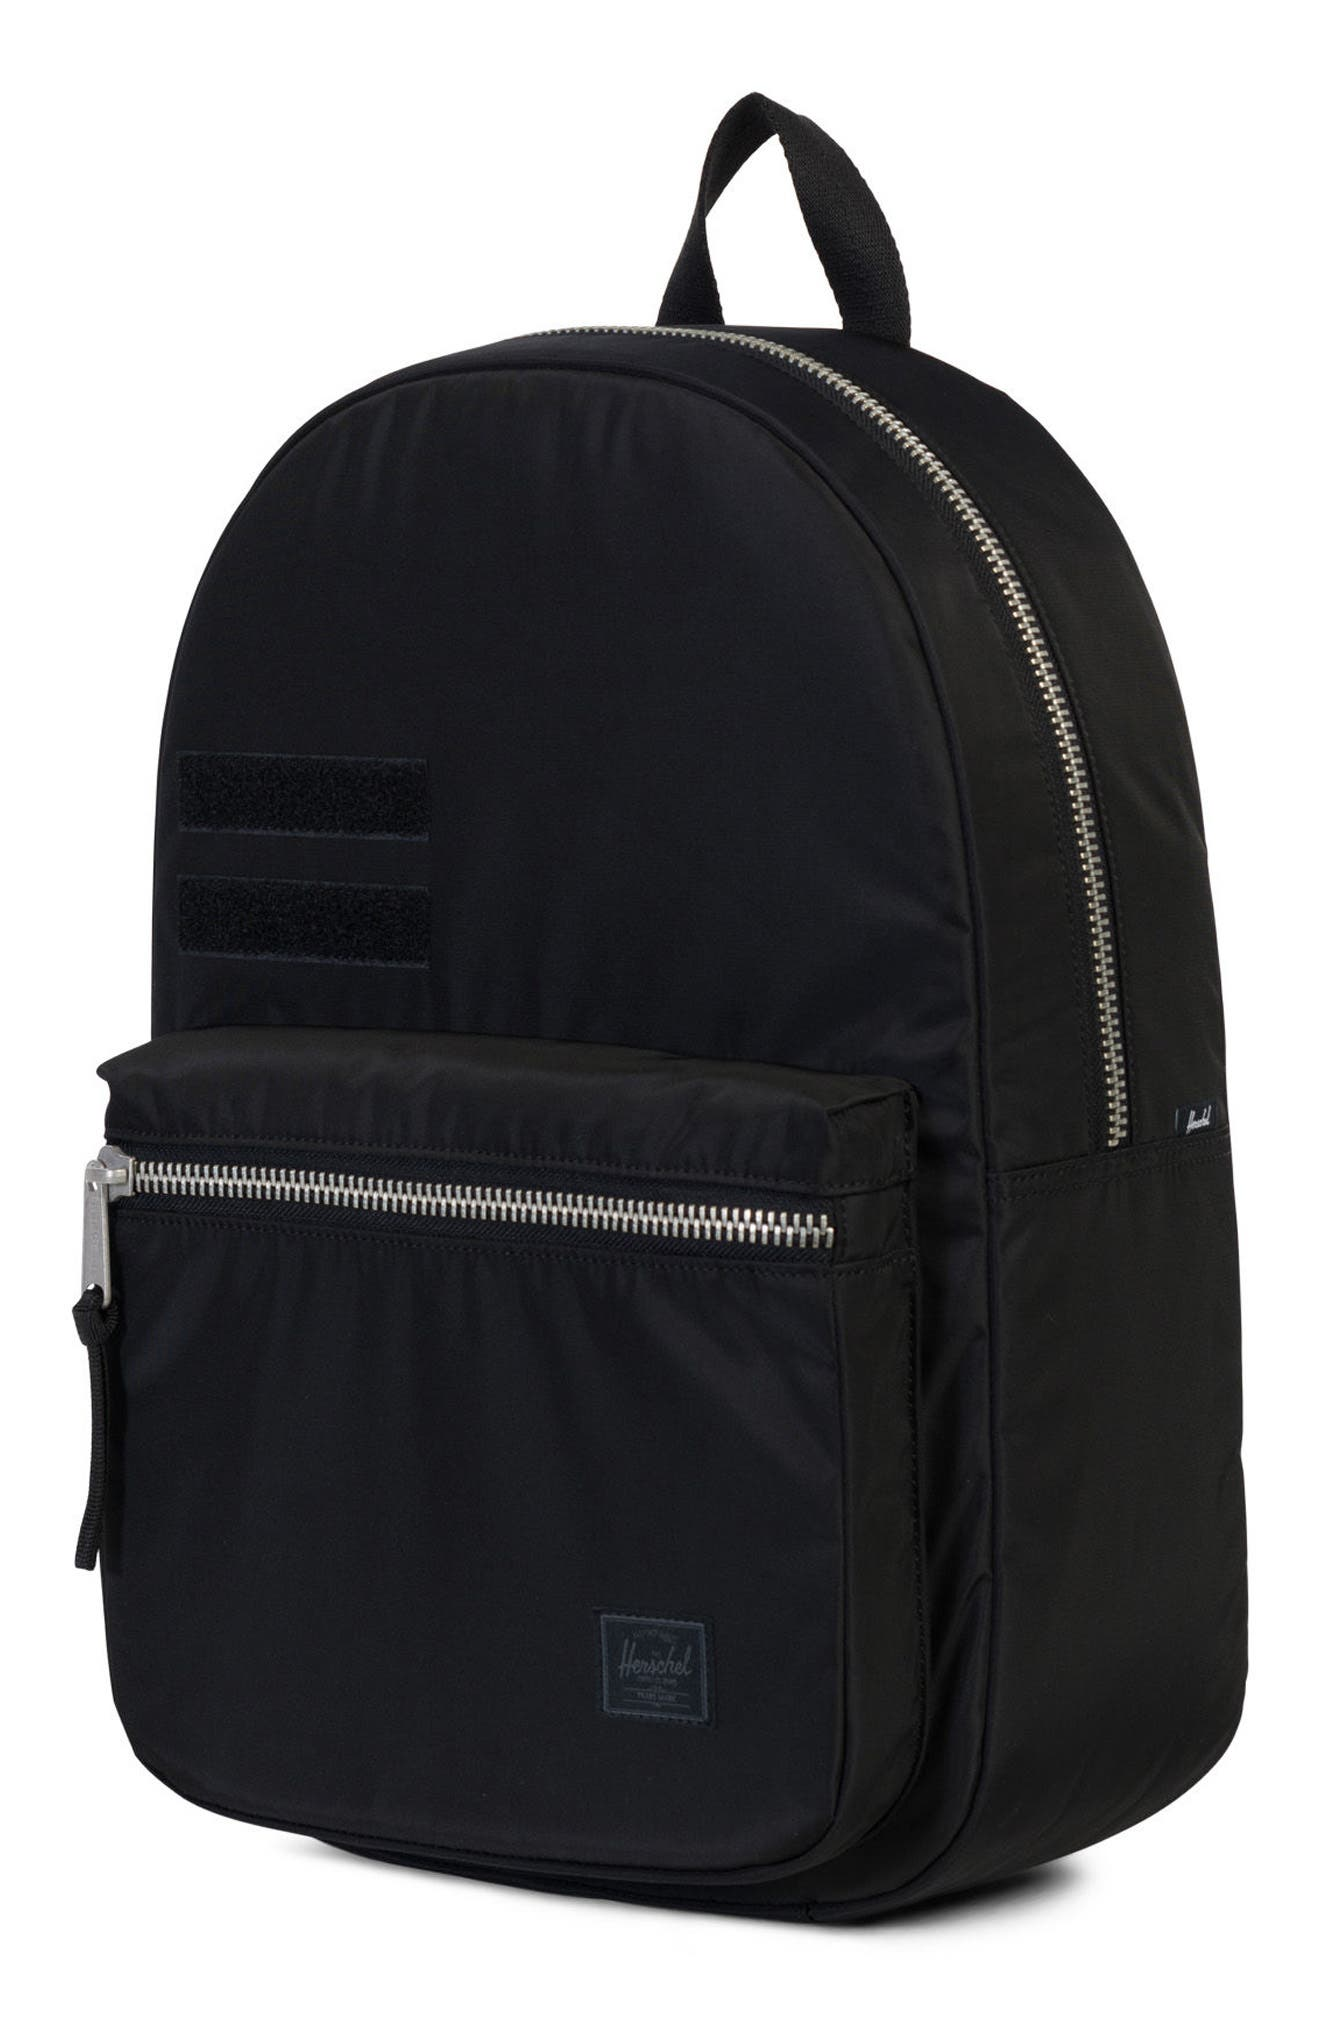 Lawson Surplus Collection Backpack,                             Alternate thumbnail 11, color,